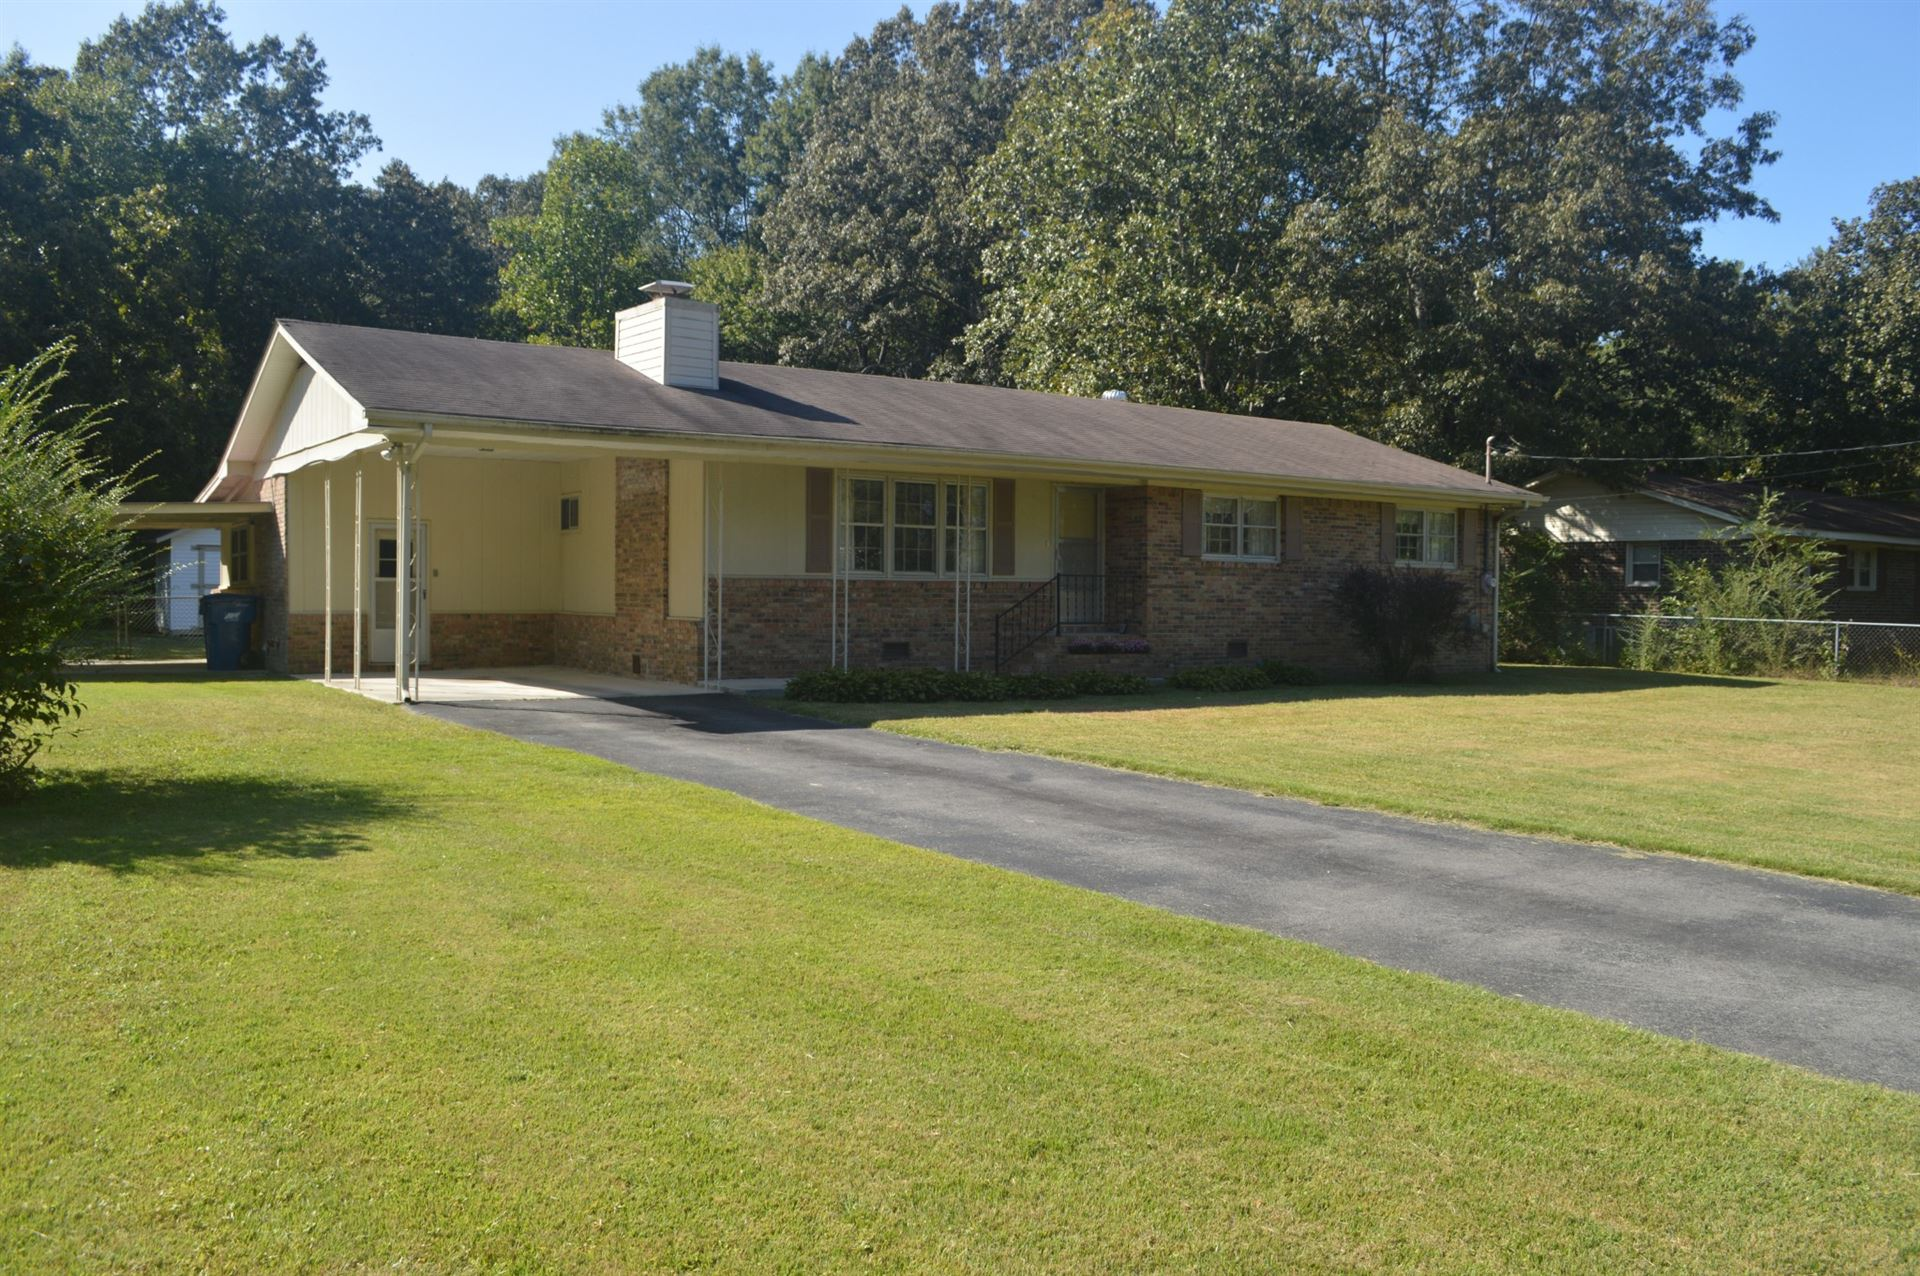 1102 Remington Pl, Manchester, TN 37355 - MLS#: 2191526